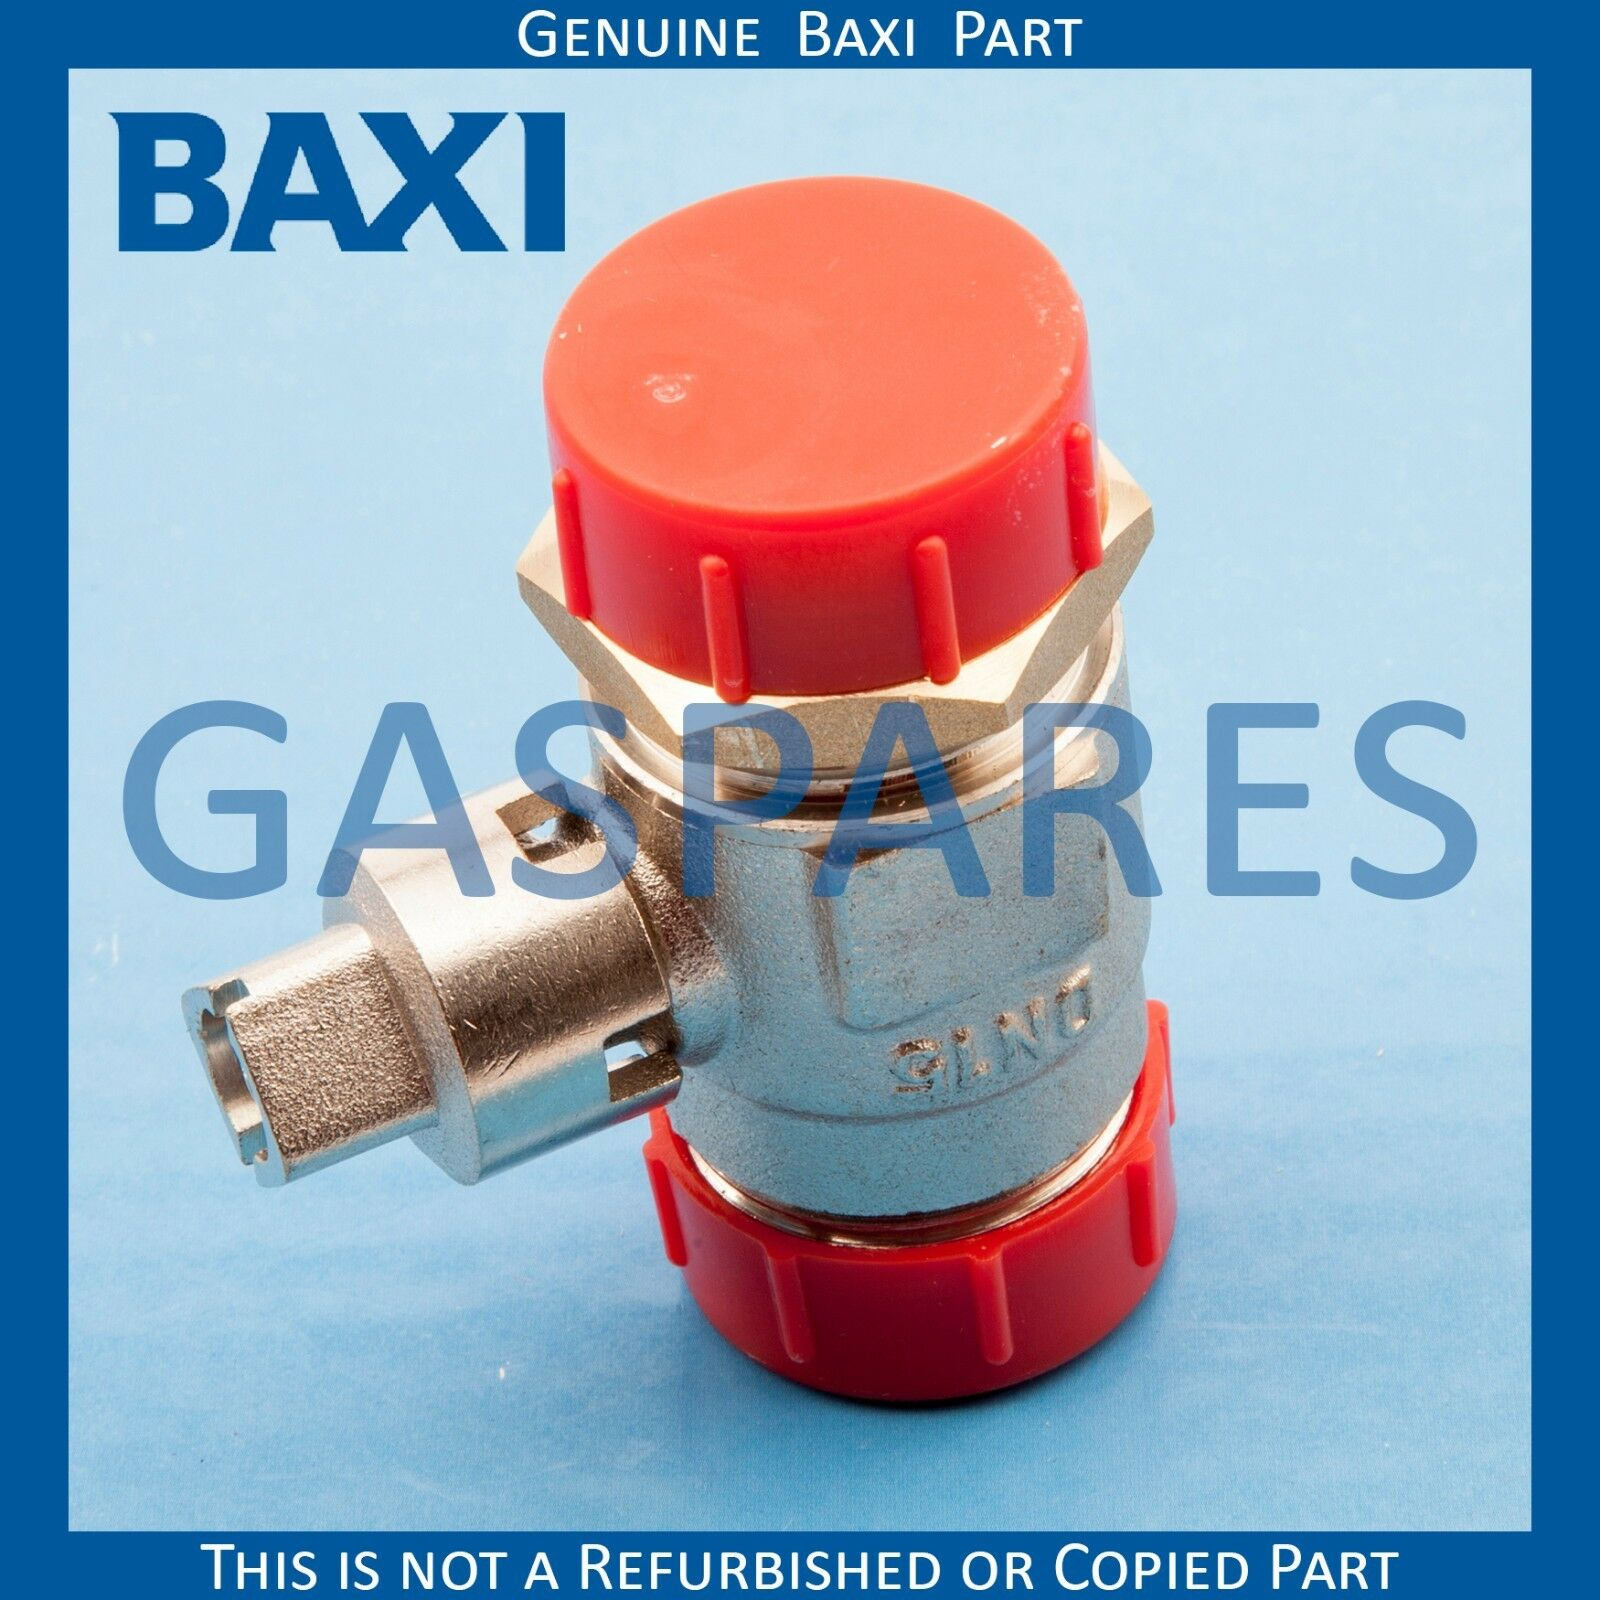 BAXI MAIN GAS Spare Gas Isolation Tap Valve Part No 247485 - Genuine ...